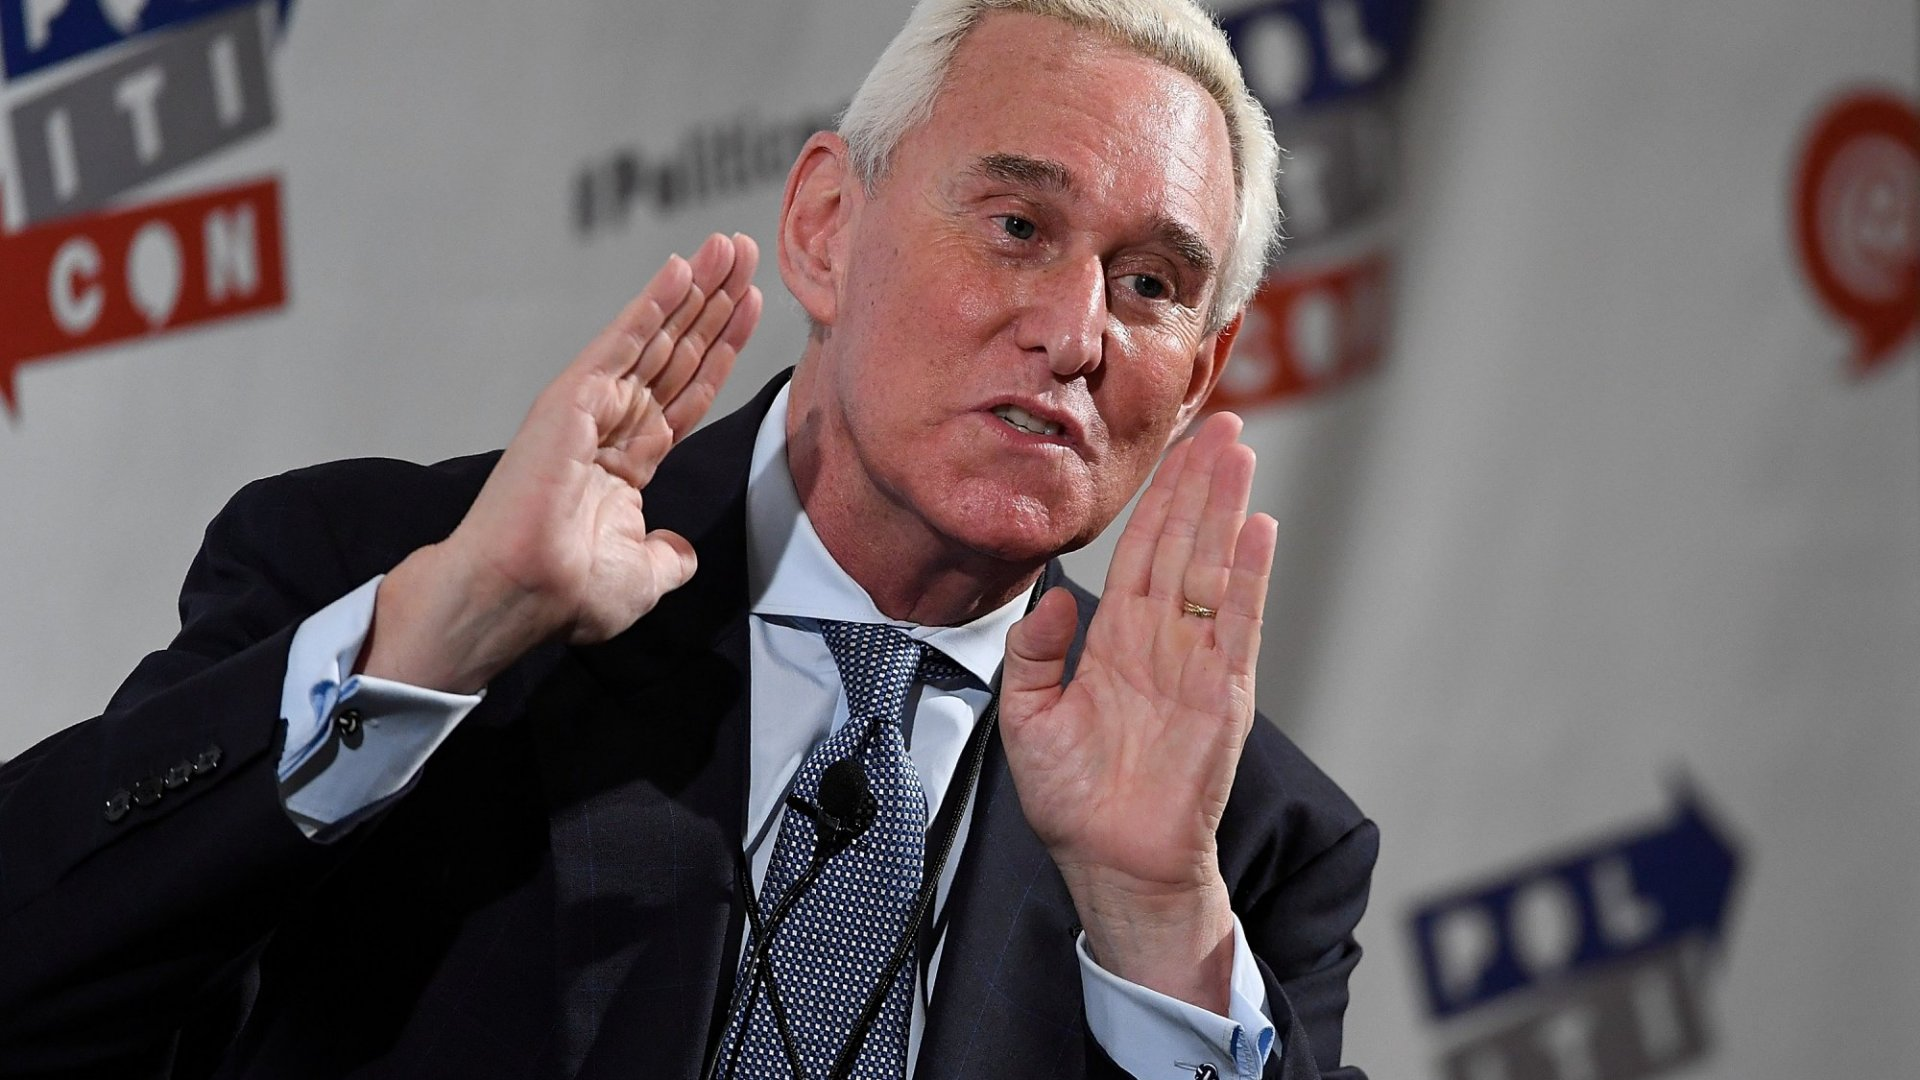 After Roger Stone gave one keynote speech this summer, a boycott mounted against the Cannabis World Congress & Business Expo. The conference announced that they cut Stone this week.